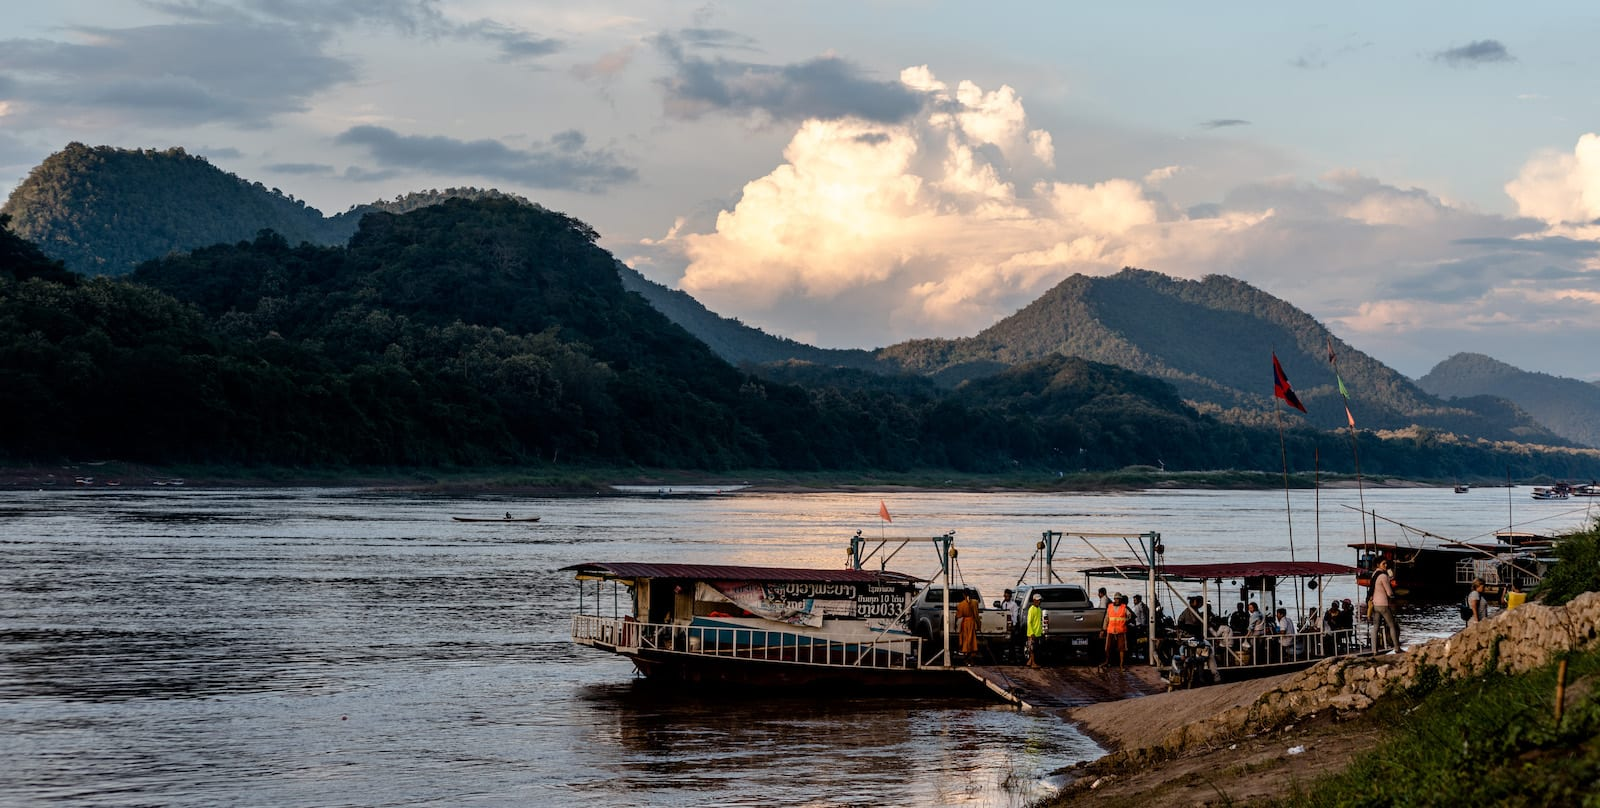 Image of the Mekong River in Vietnam